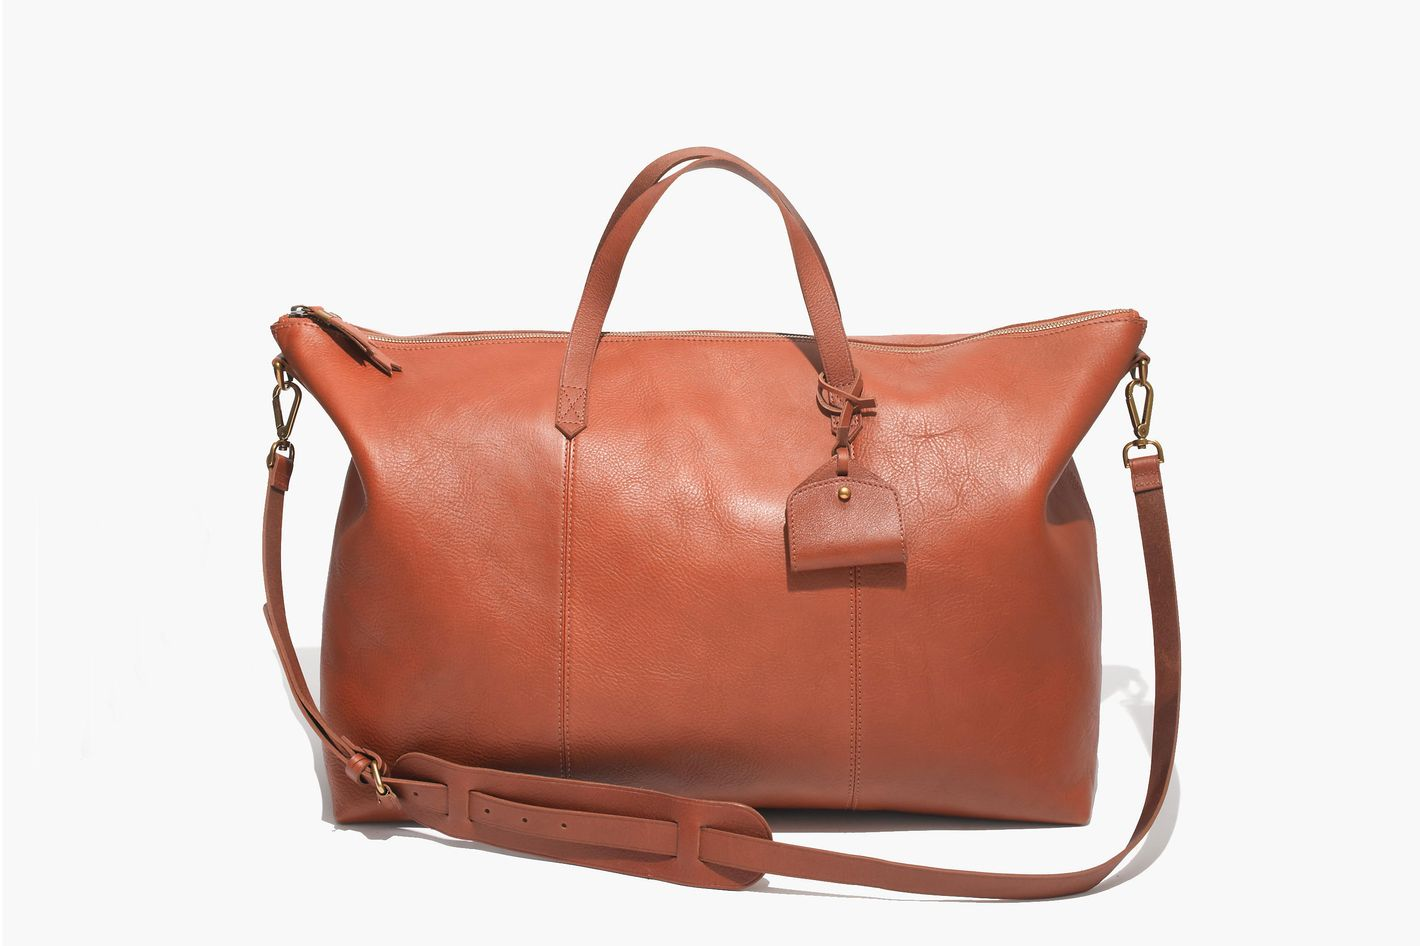 9bc176e12b Madewell 'Transport' Weekend Bag